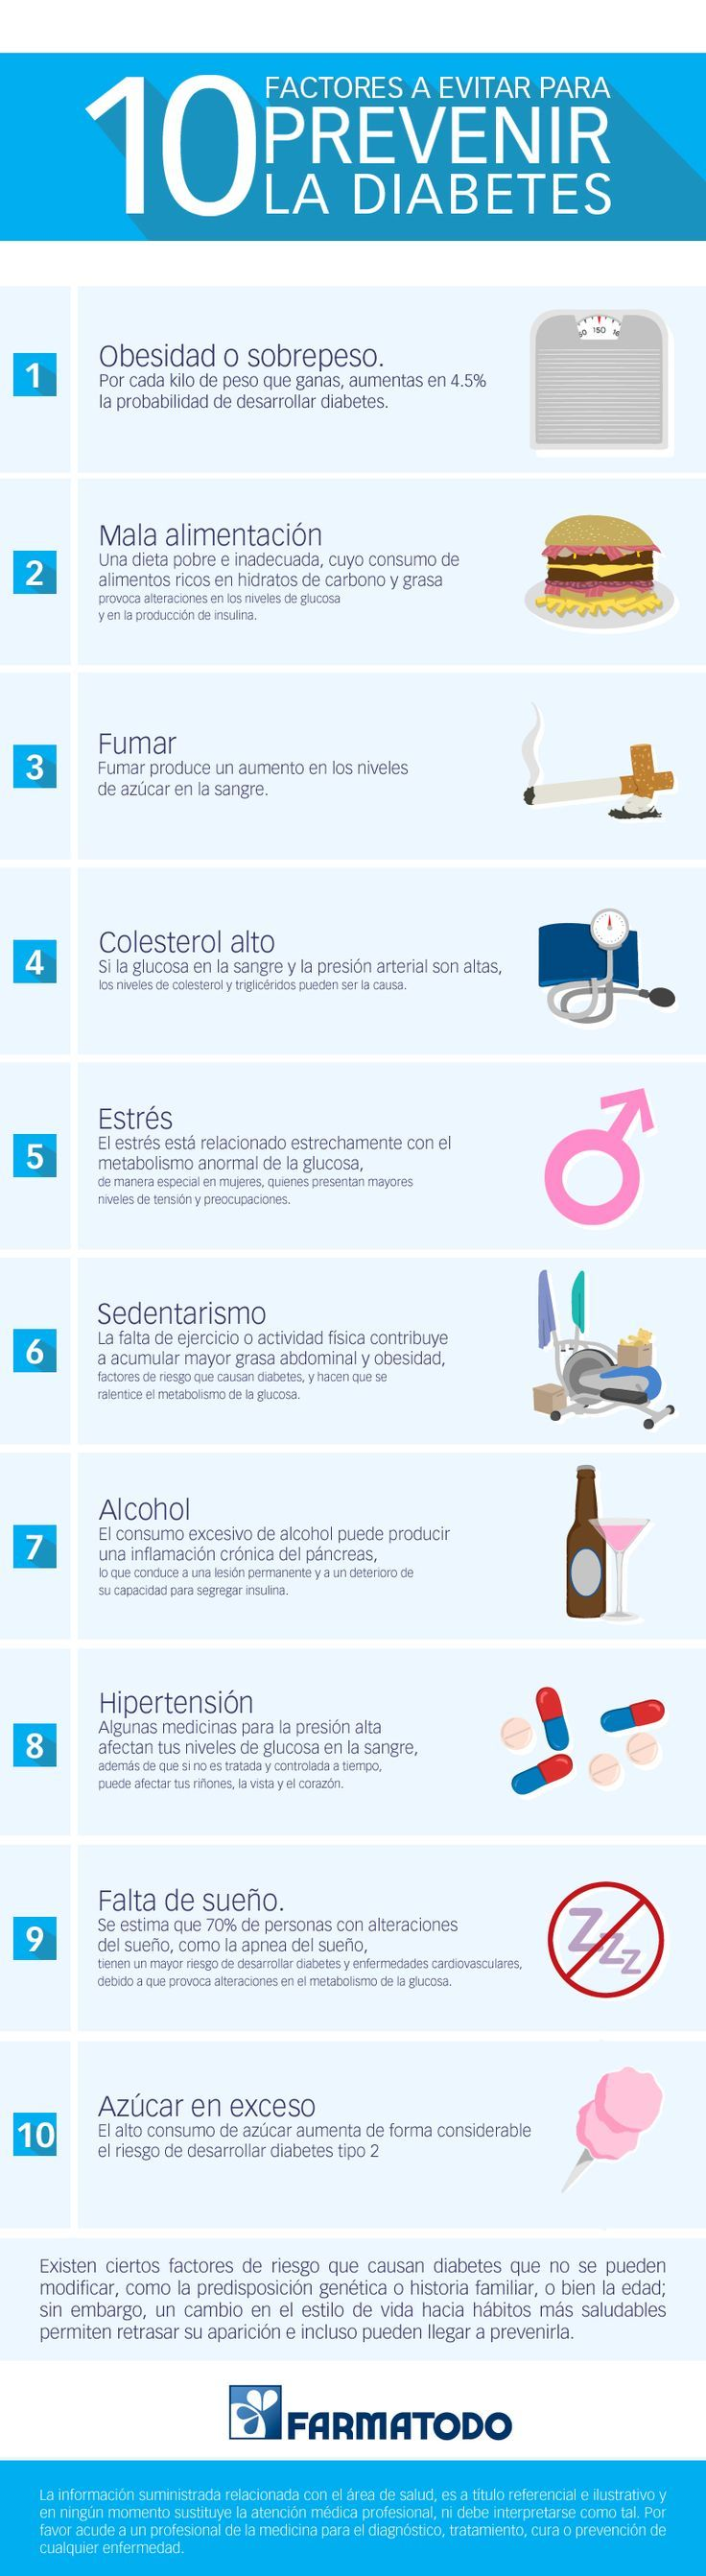 ¿El consumo de alcohol causa diabetes?